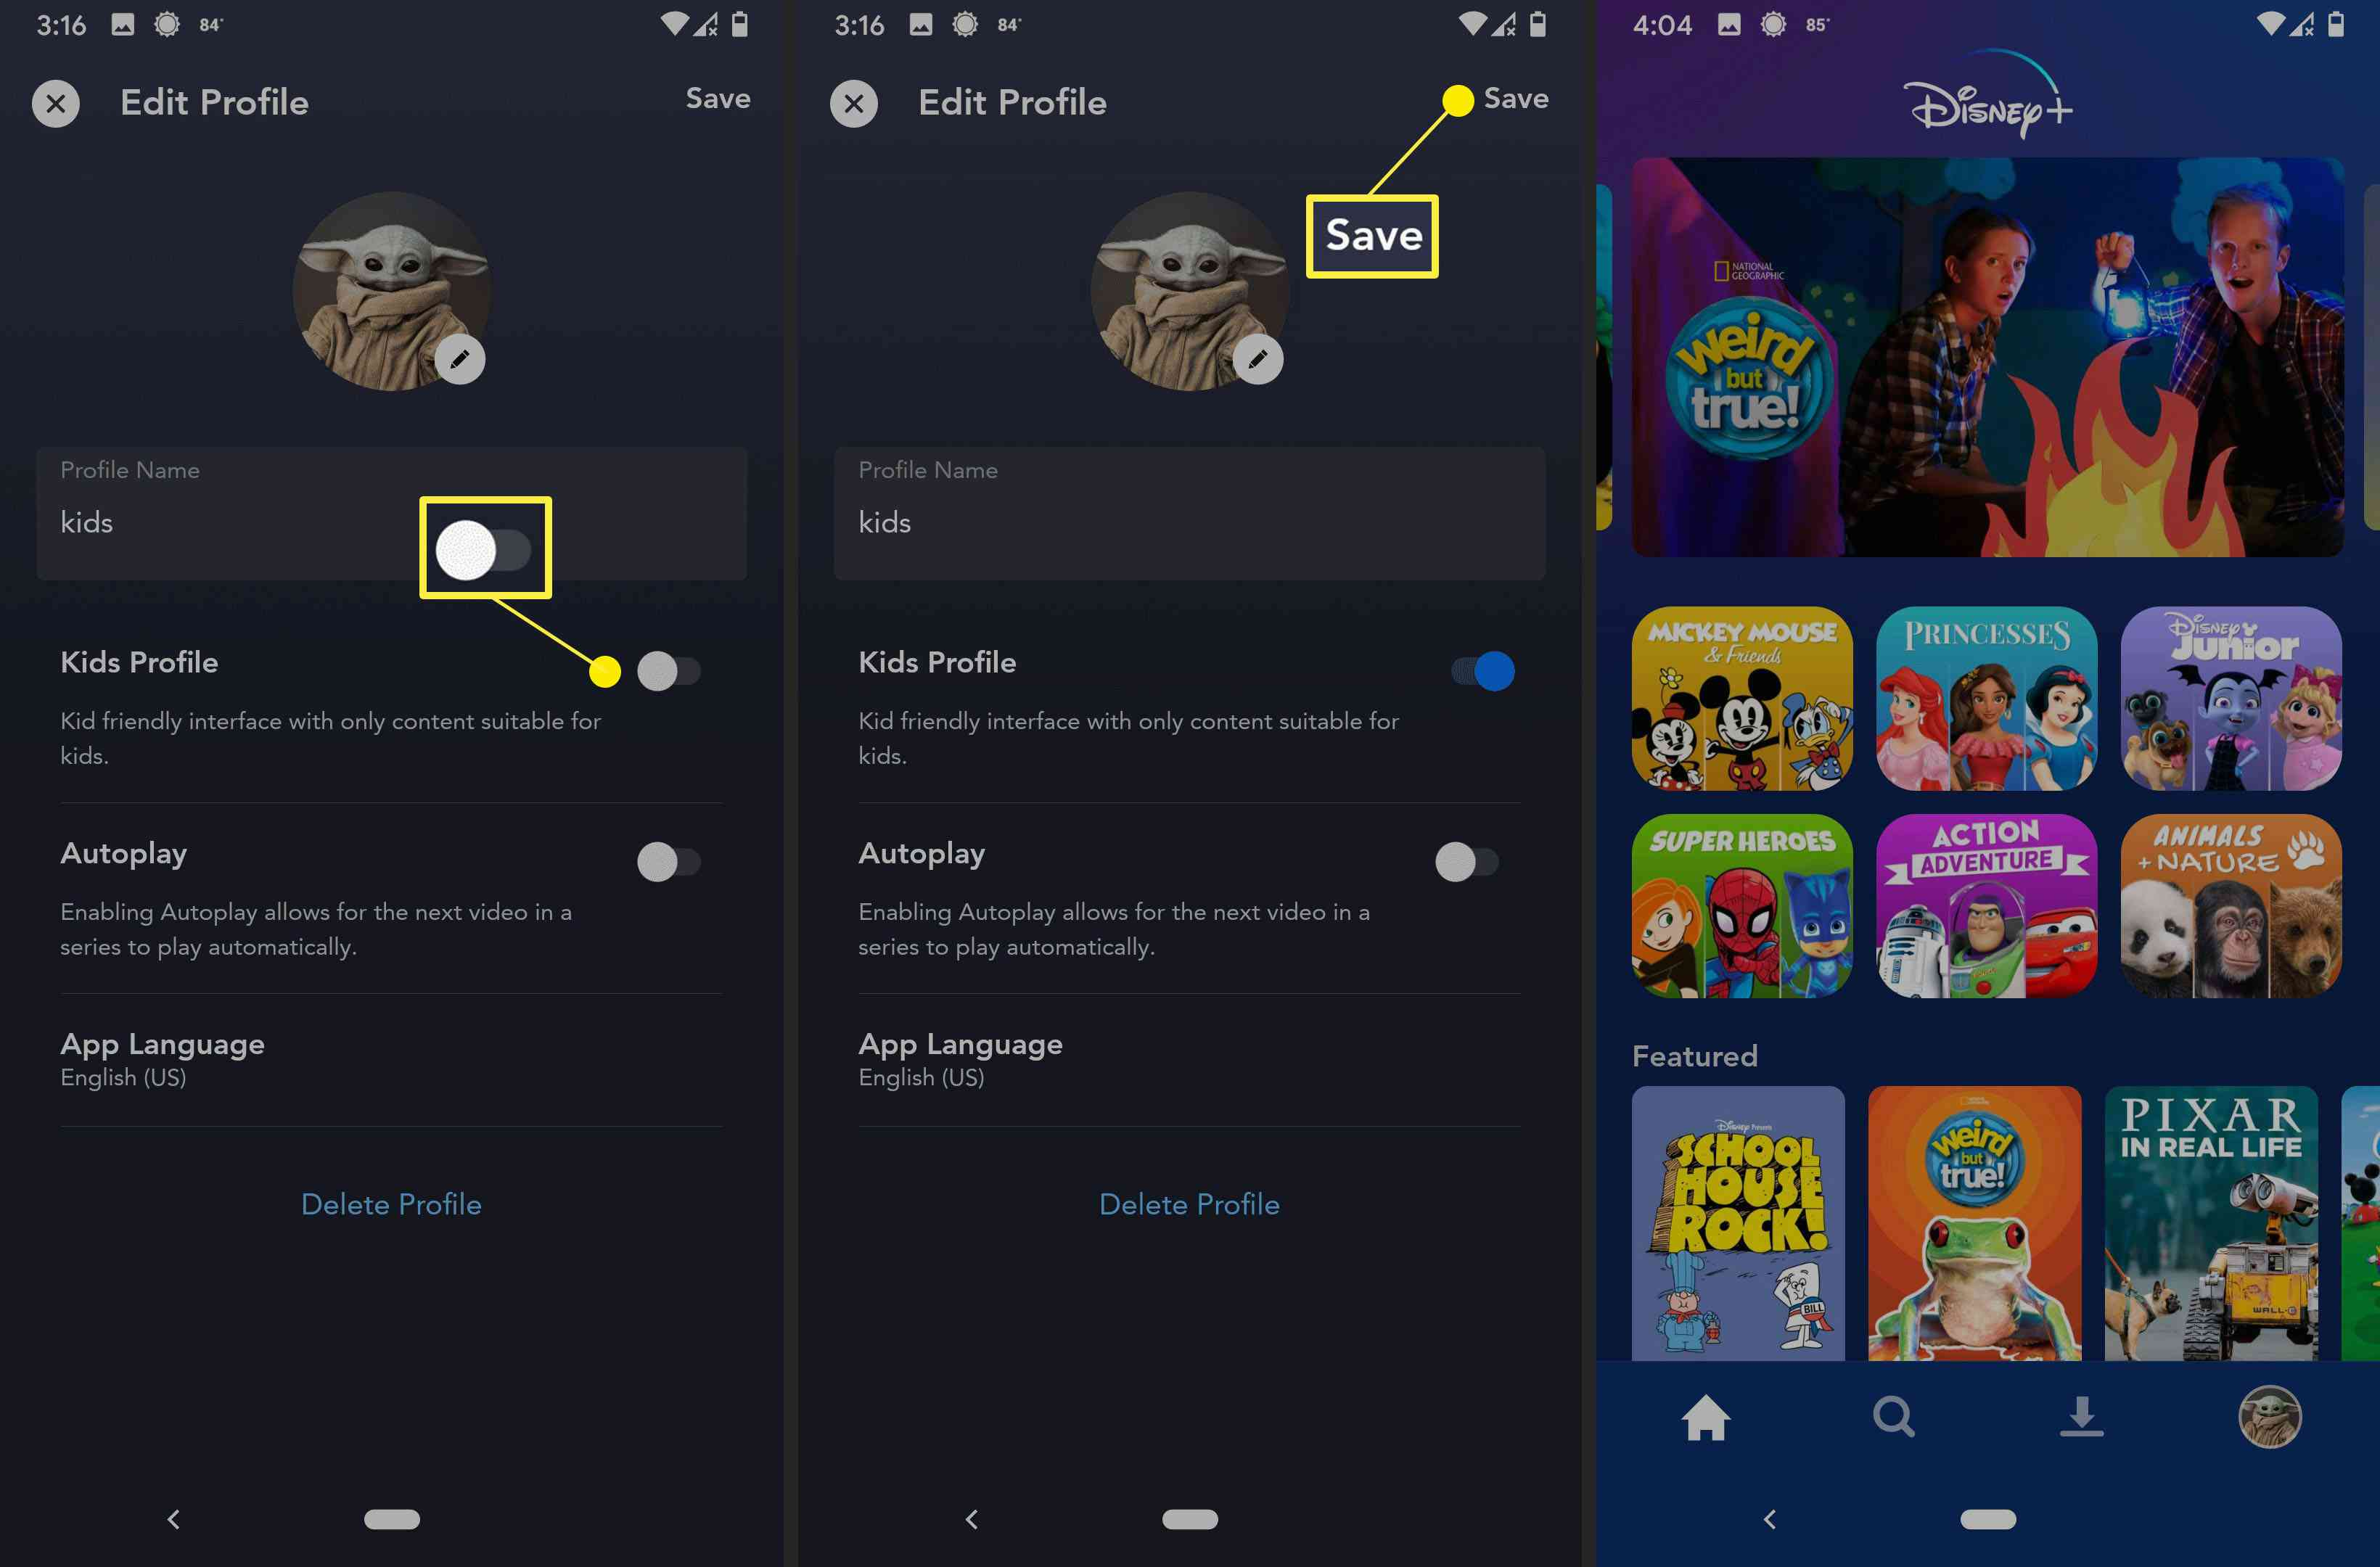 Setting up a child's protected profile on Disney+.